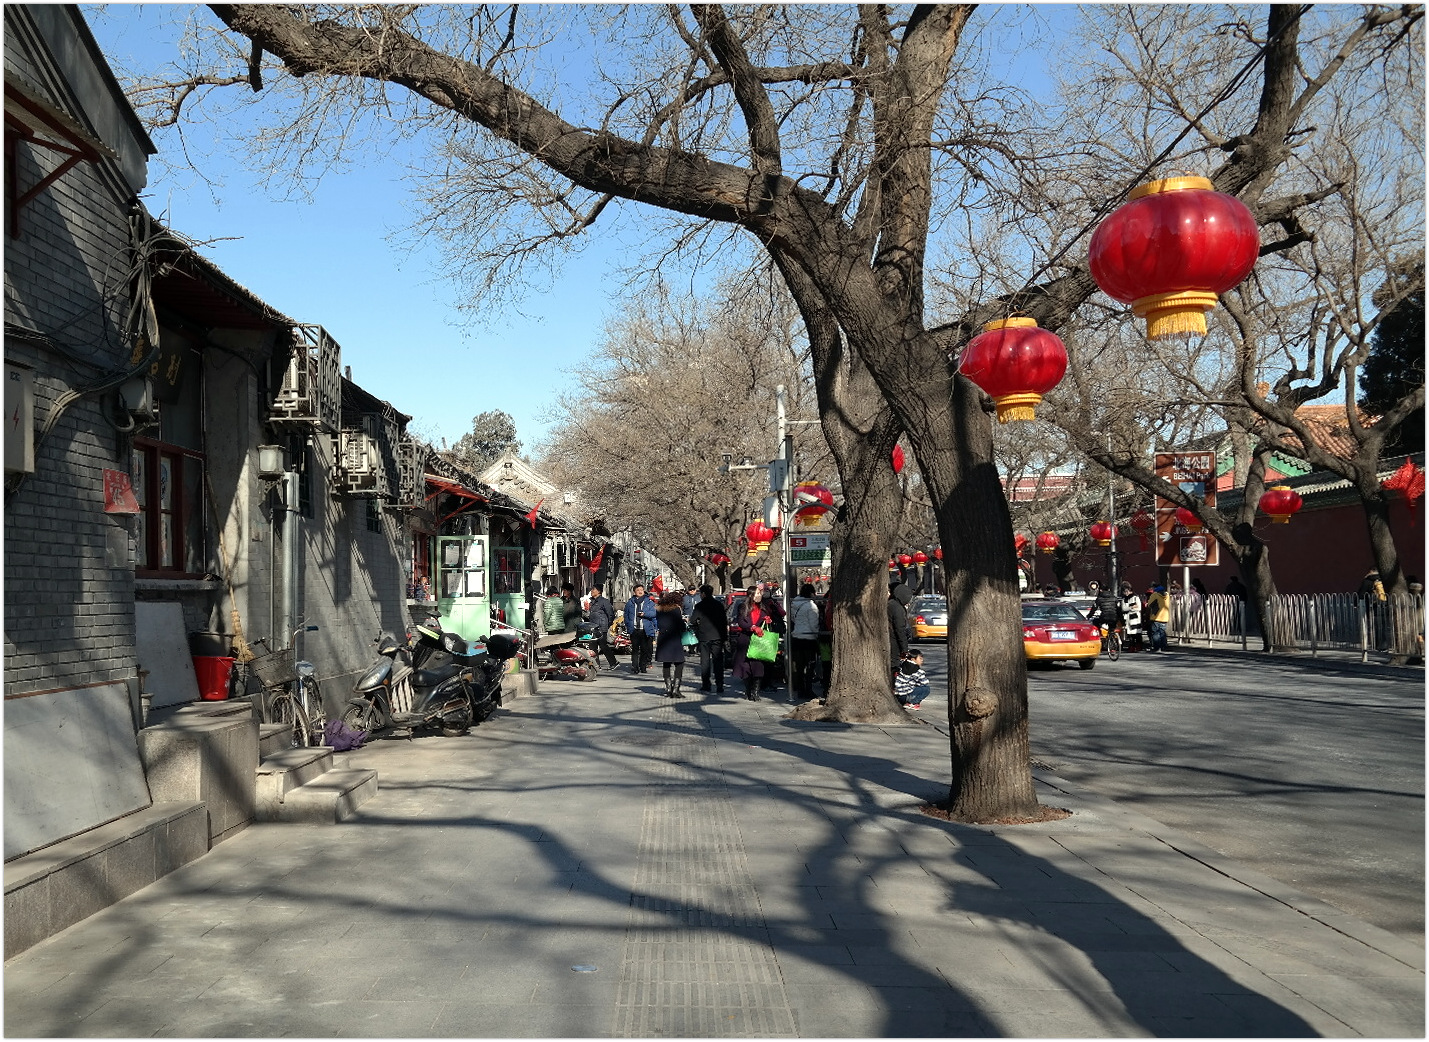 Beijing - Around Forbidden City in Spring Festival